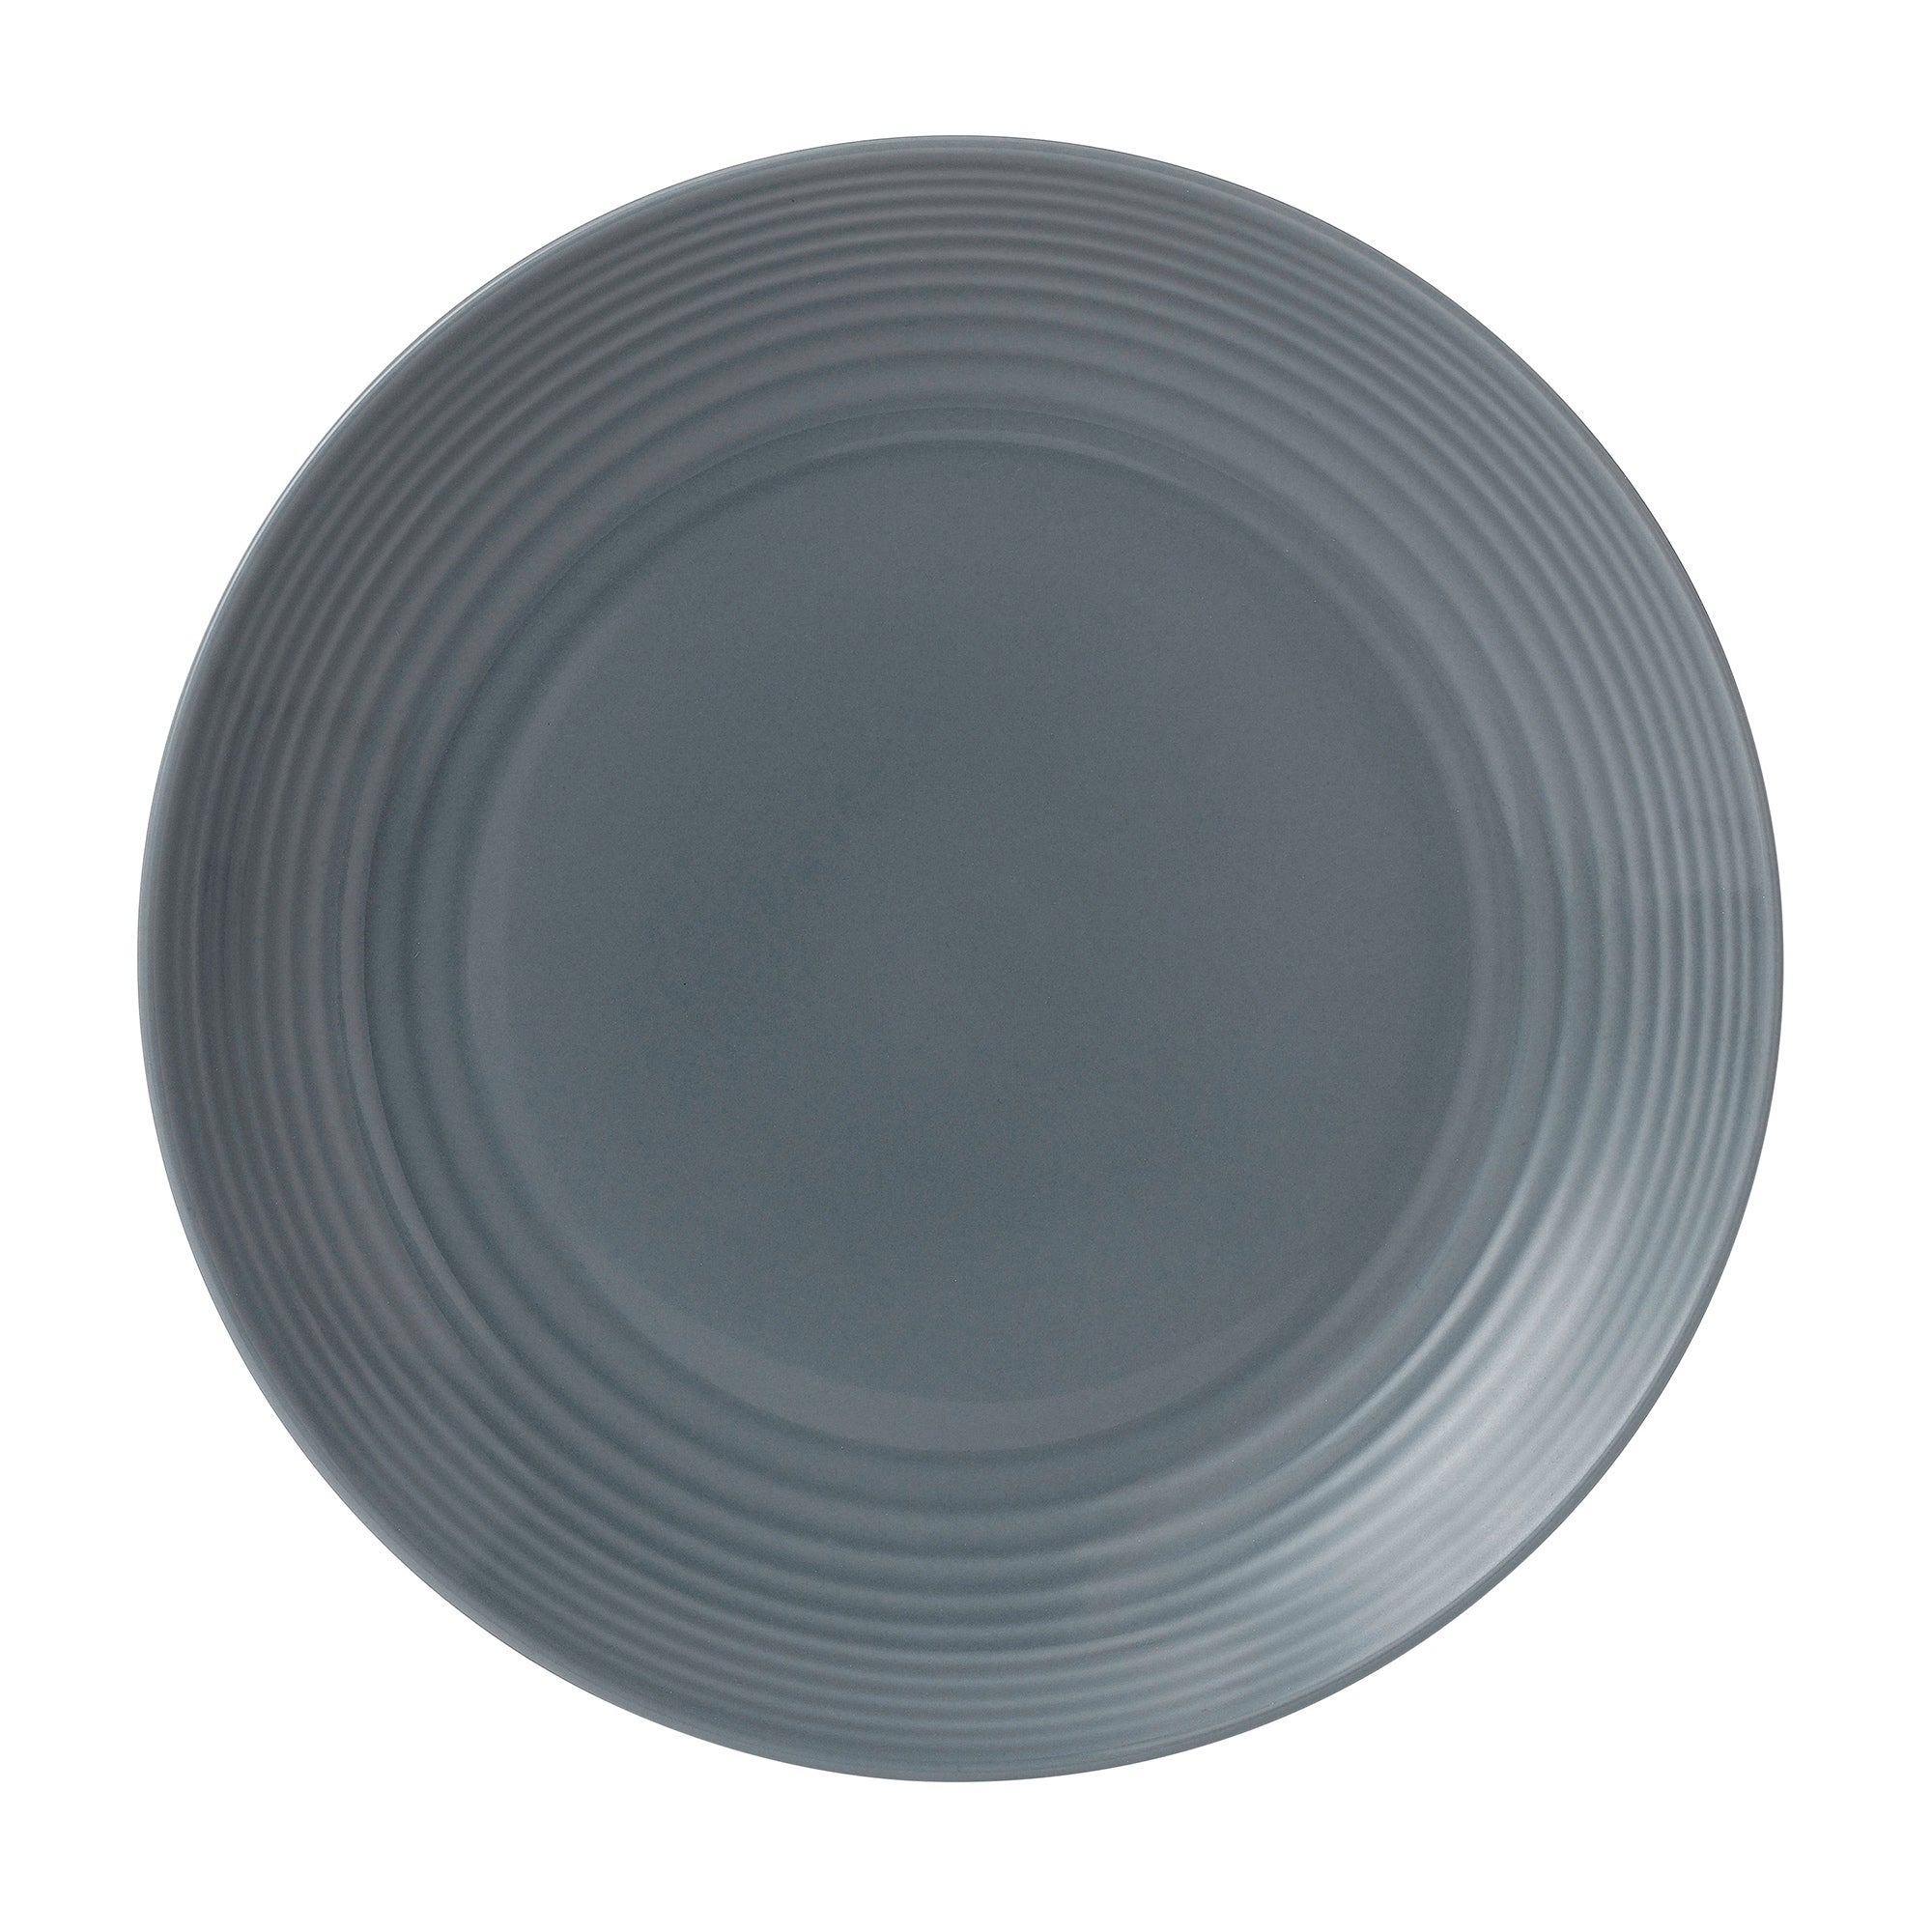 Image of Gordon Ramsay Royal Doulton Grey Maze Dinner Plate Grey